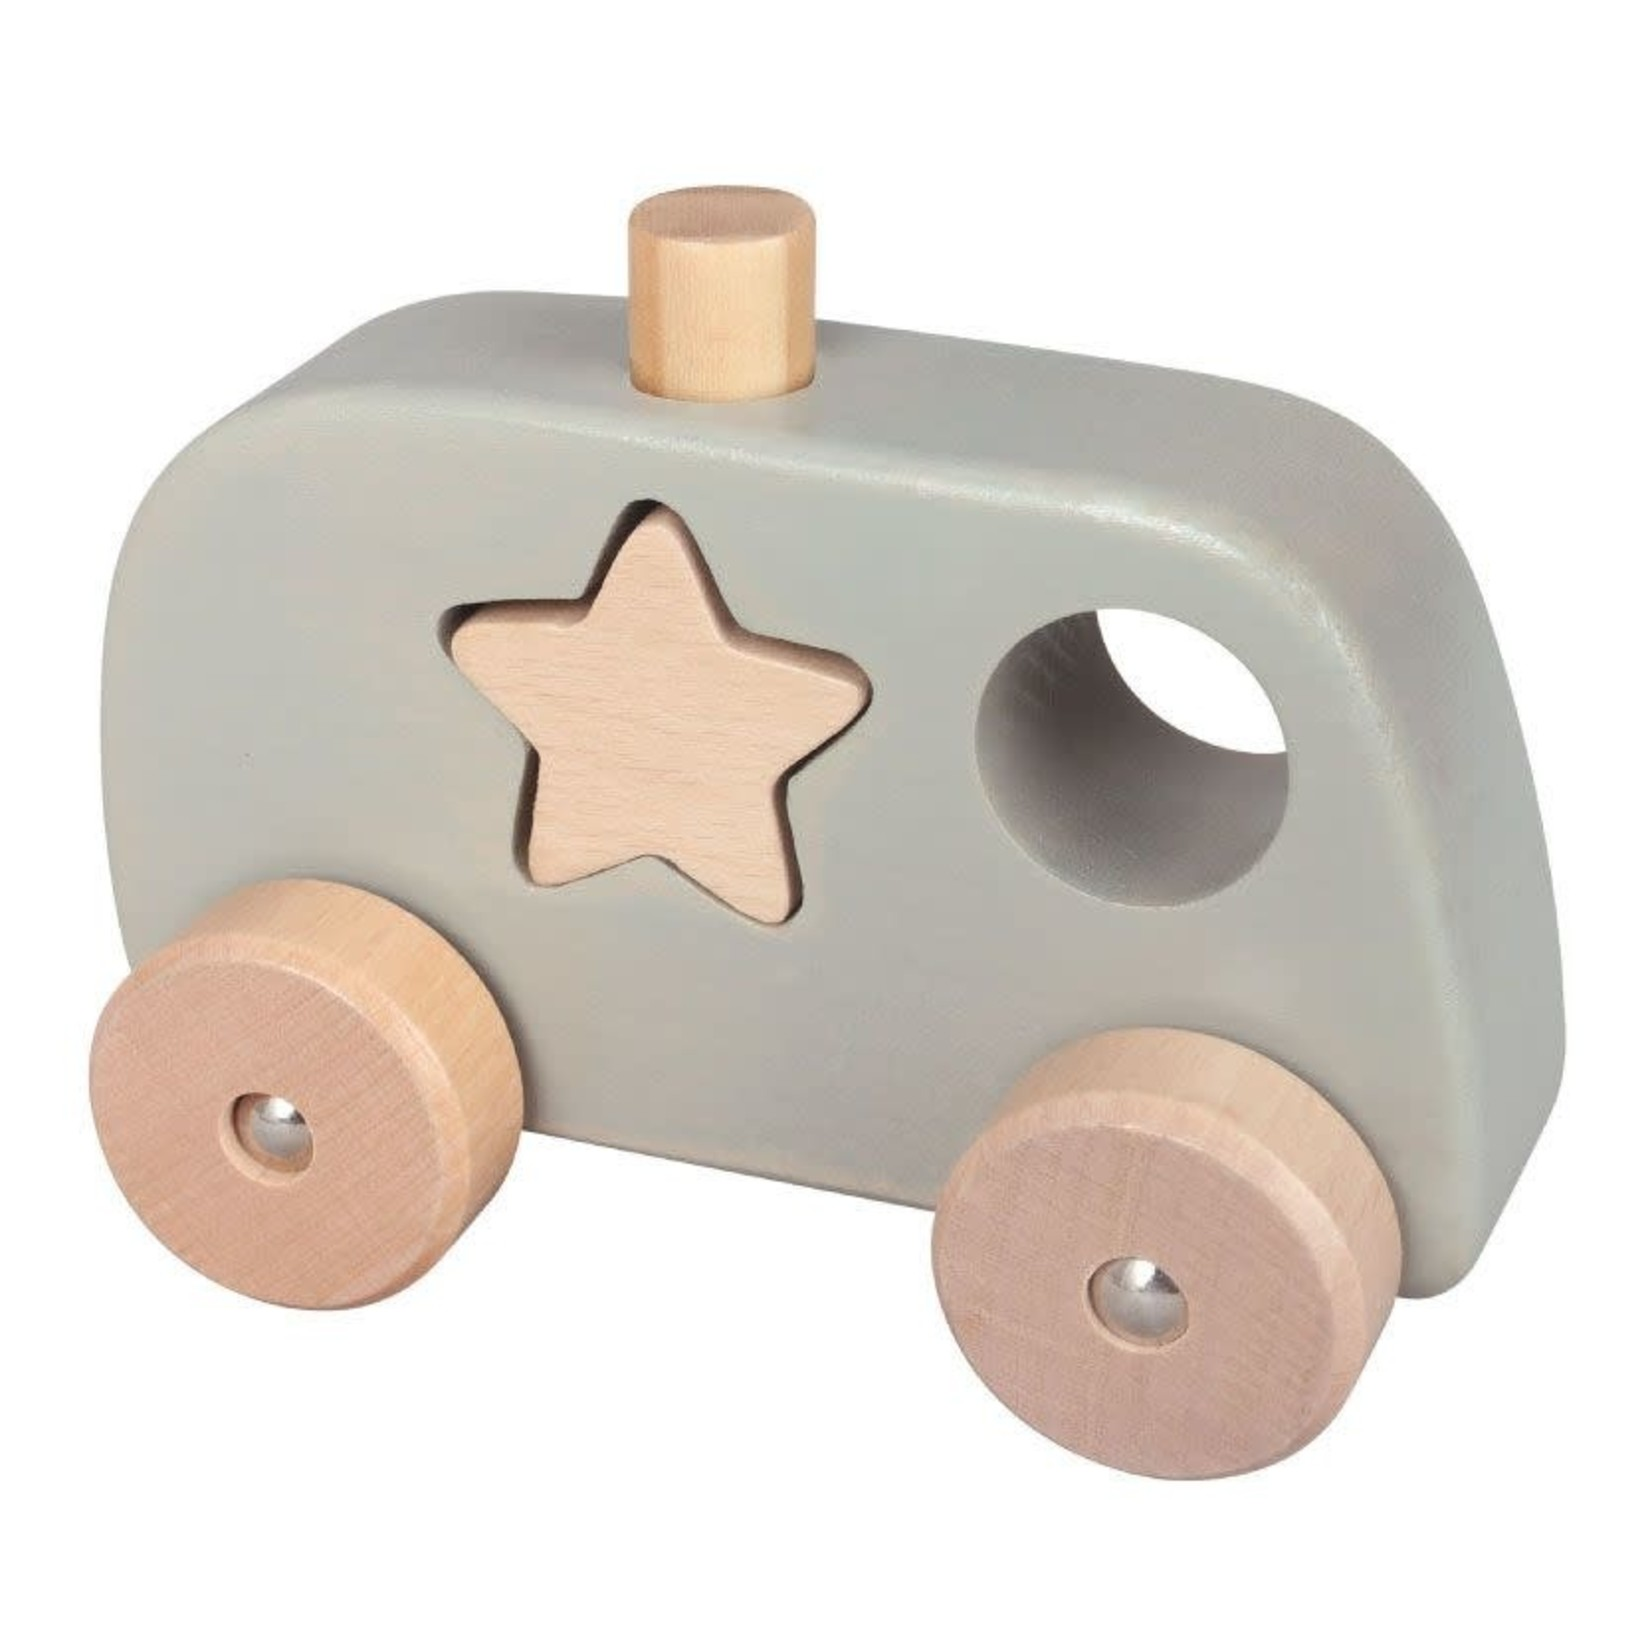 Baby Brands Discoveroo: Chunky Shape Truck Police - Grey